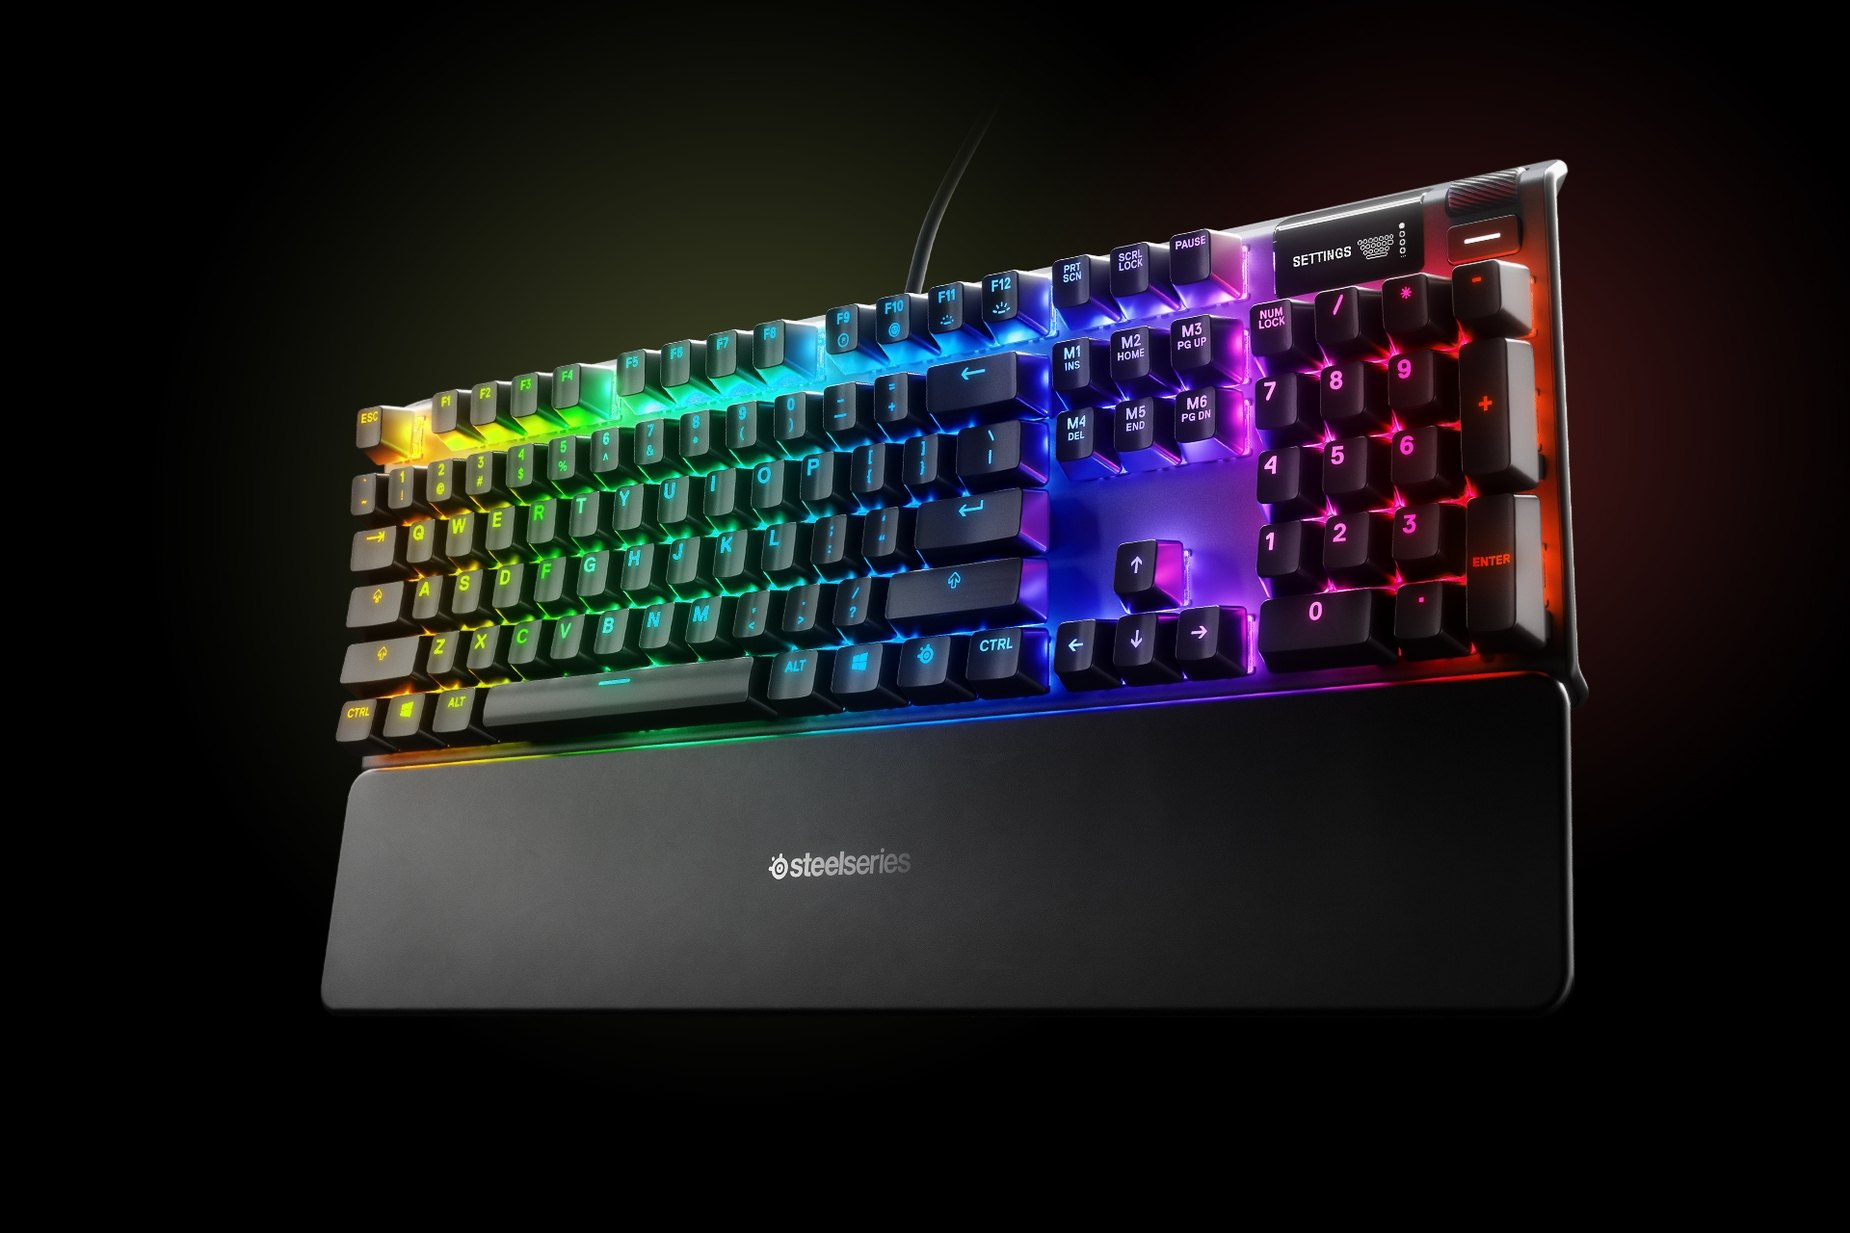 英国英语-Apex 7 (Blue Switch) gaming keyboard with the illumination lit up on dark background, also shows the OLED screen and controls used to change settings and adjust audio